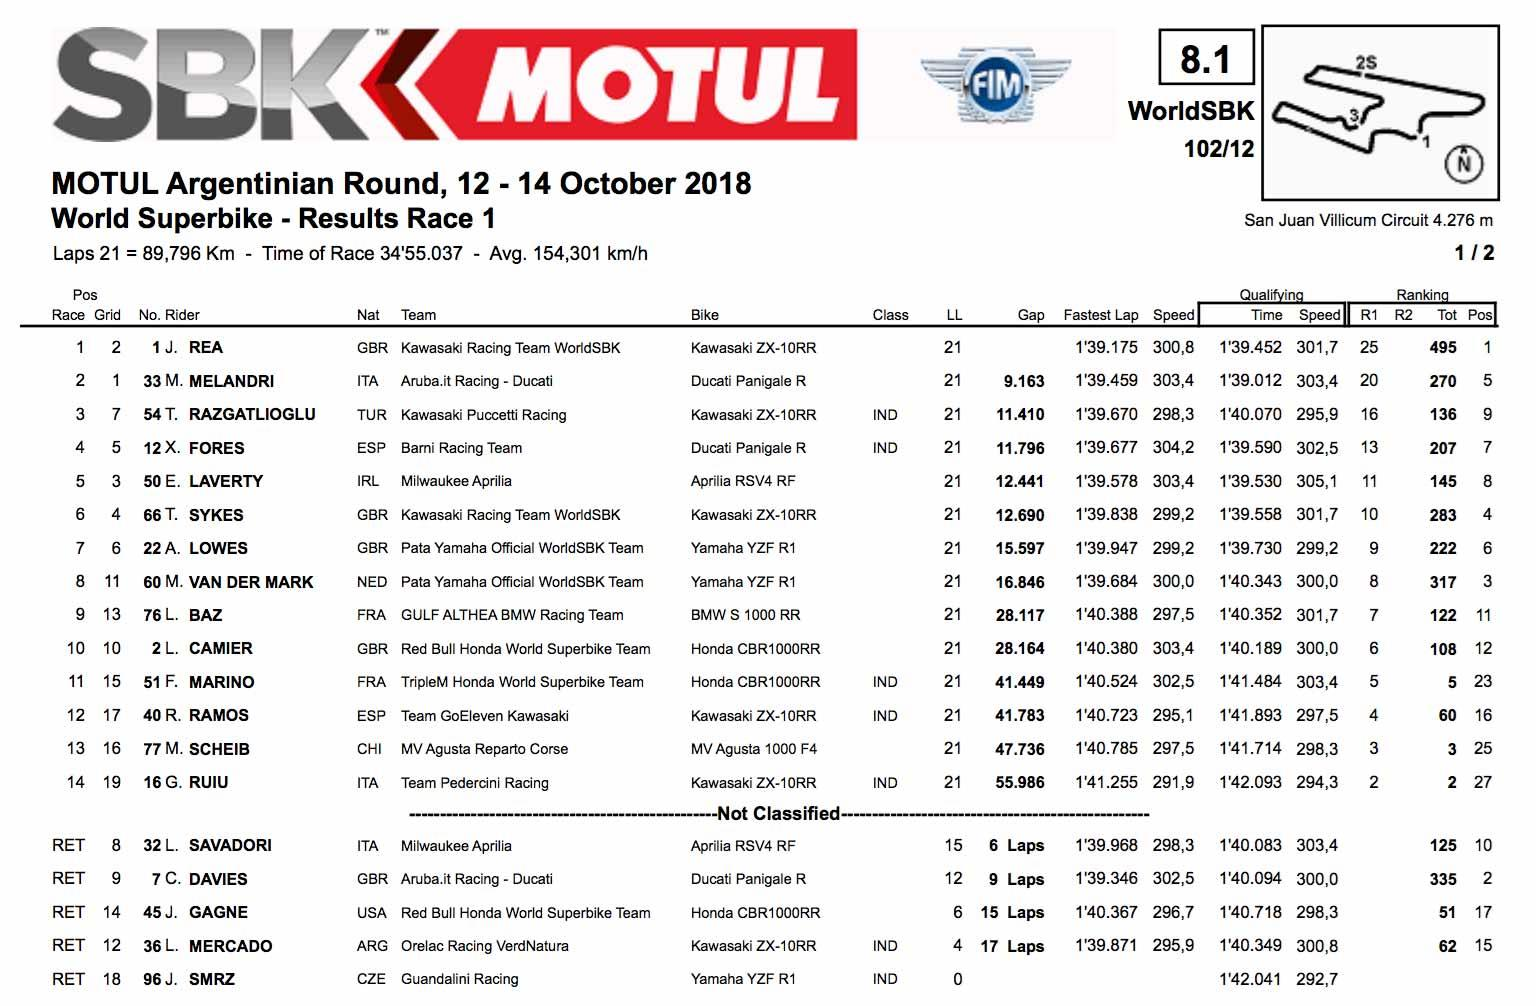 WSB race one result